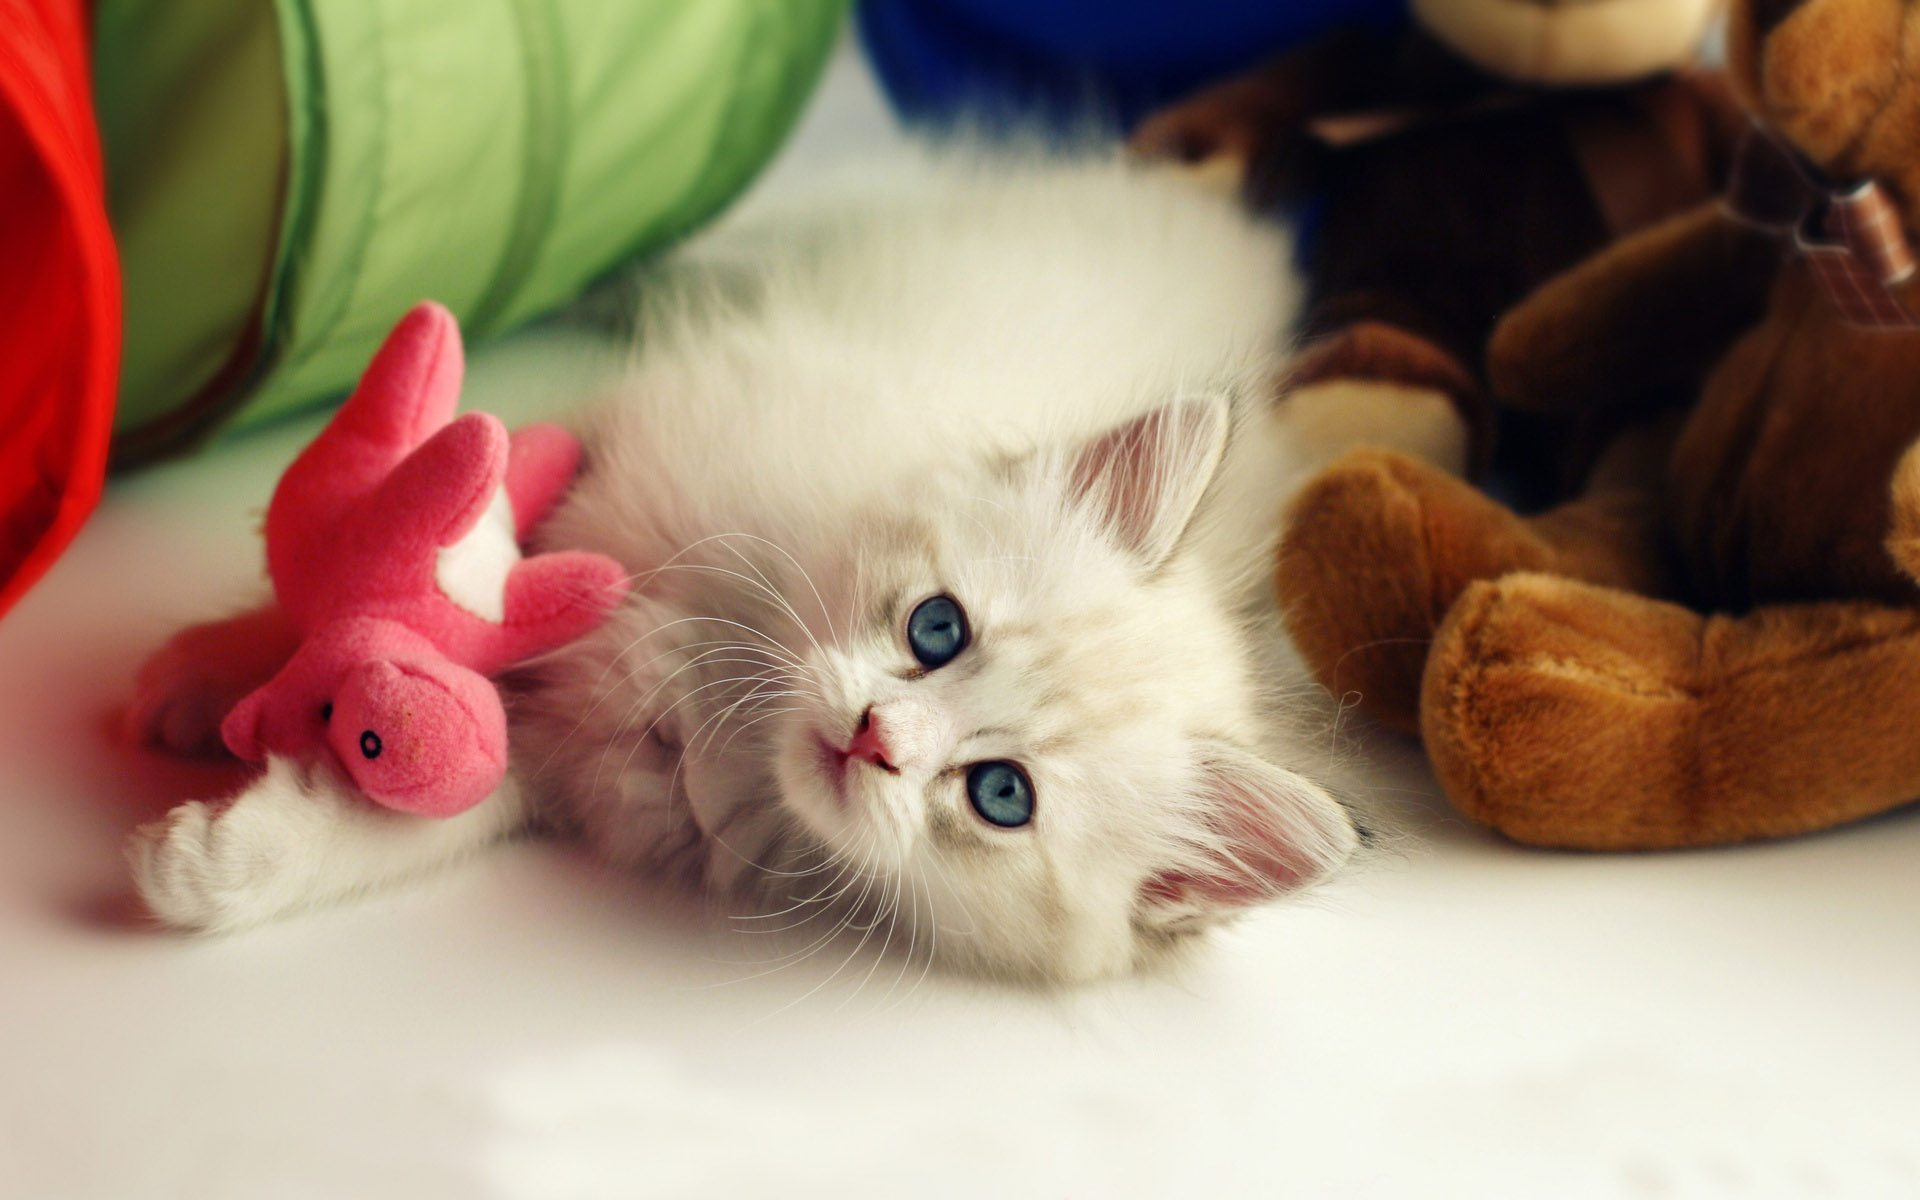 Cute-Pets-Mac-HD-Wallpapers-With-My-Little-Cat